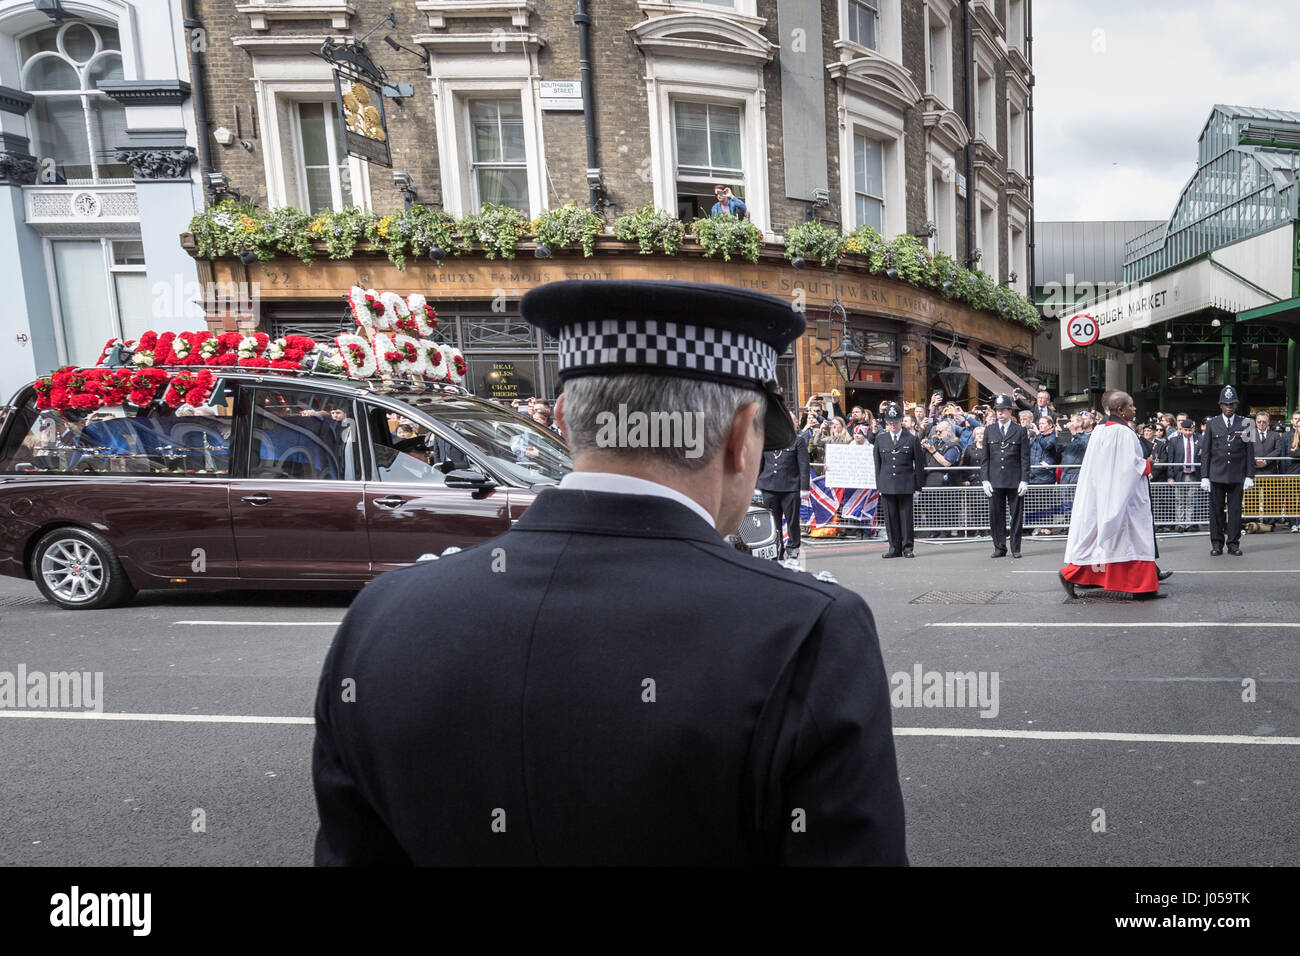 London, UK. 10th Apr, 2017. Funeral day of PC Keith Palmer who was killed in Westminster on 22nd March. Credit: Stock Photo